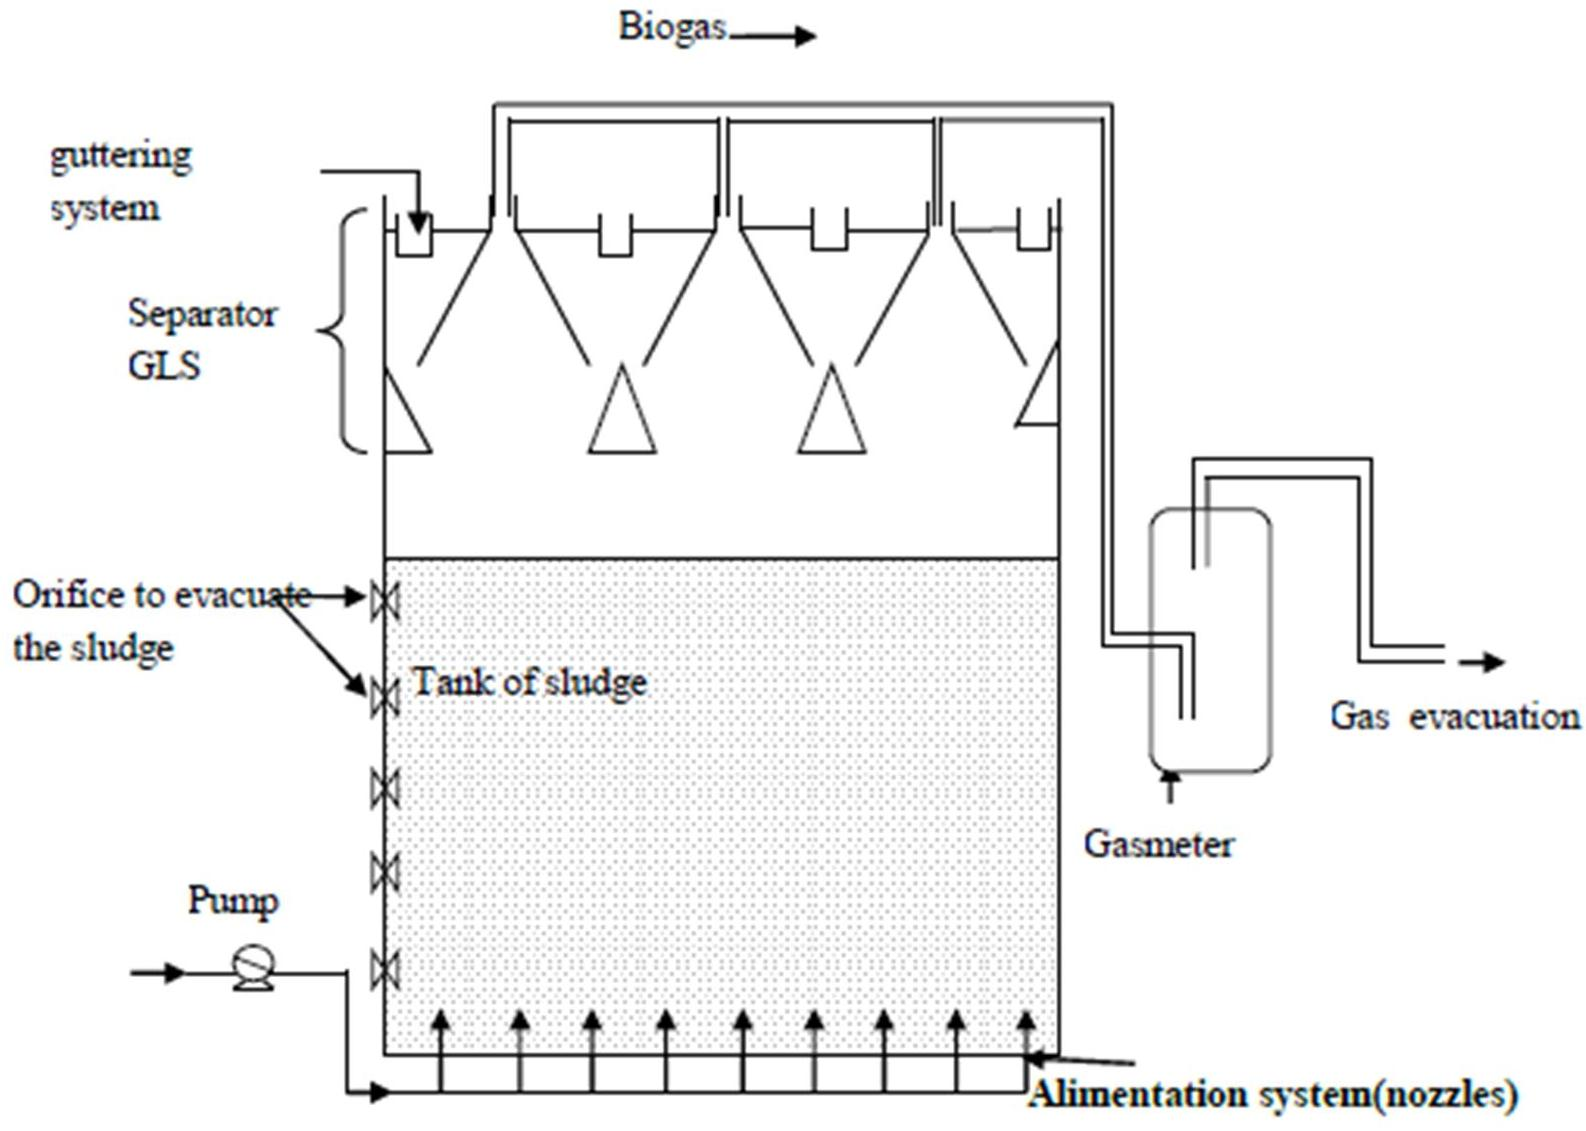 Ibima Publishing A Thermo Economic Modeling To Conceptualize Biogas Digester Diagram Figure N 1 Schematic Presentation Of The